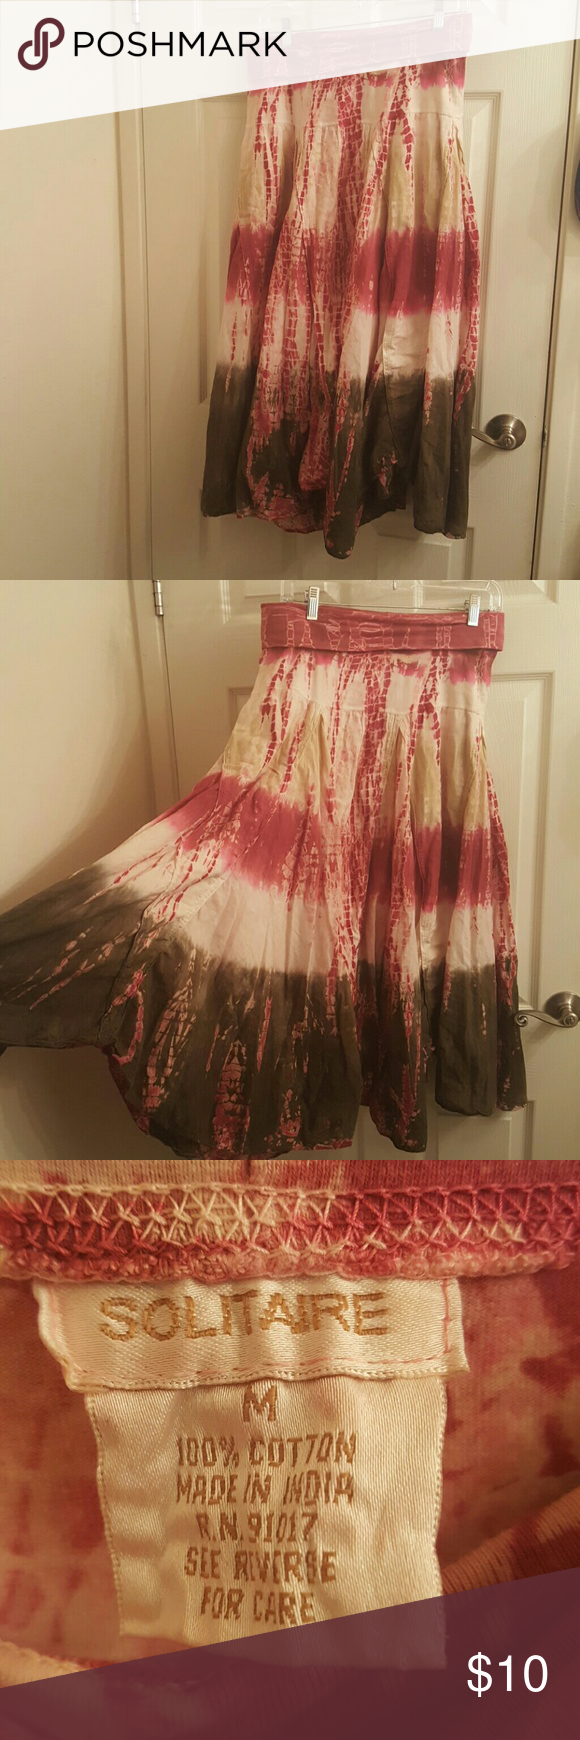 Tie dye skirt Pink and green tie dye skirt. Super comfy just don't wear it anymore. Come to shin lenth if worn at the waist. 100% cotton with fold over elastic waist solitaire Skirts Midi